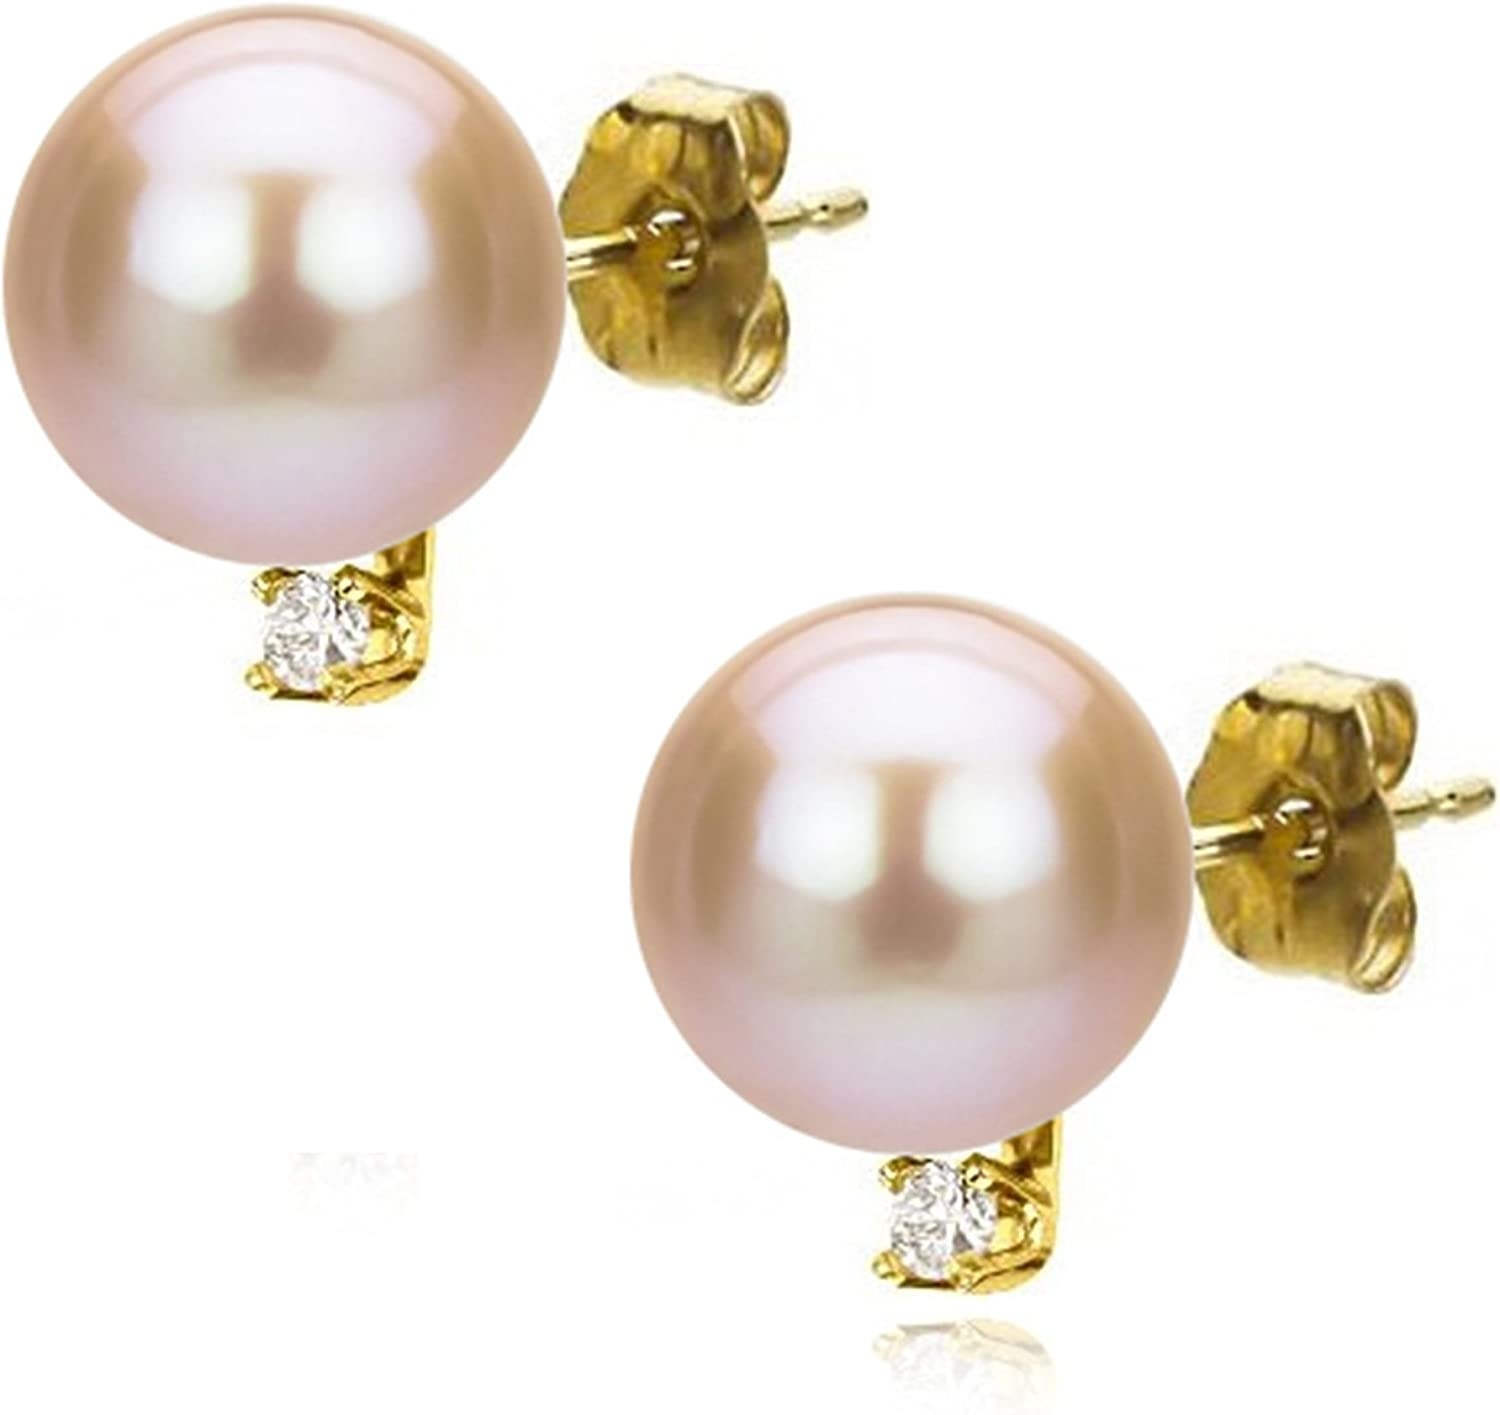 Pink Pearl Earrings Bridal Party Post Earrings Excellent Pearl Luster Freshwater Real Pearls Sparkly Rhinestones Gold Tones